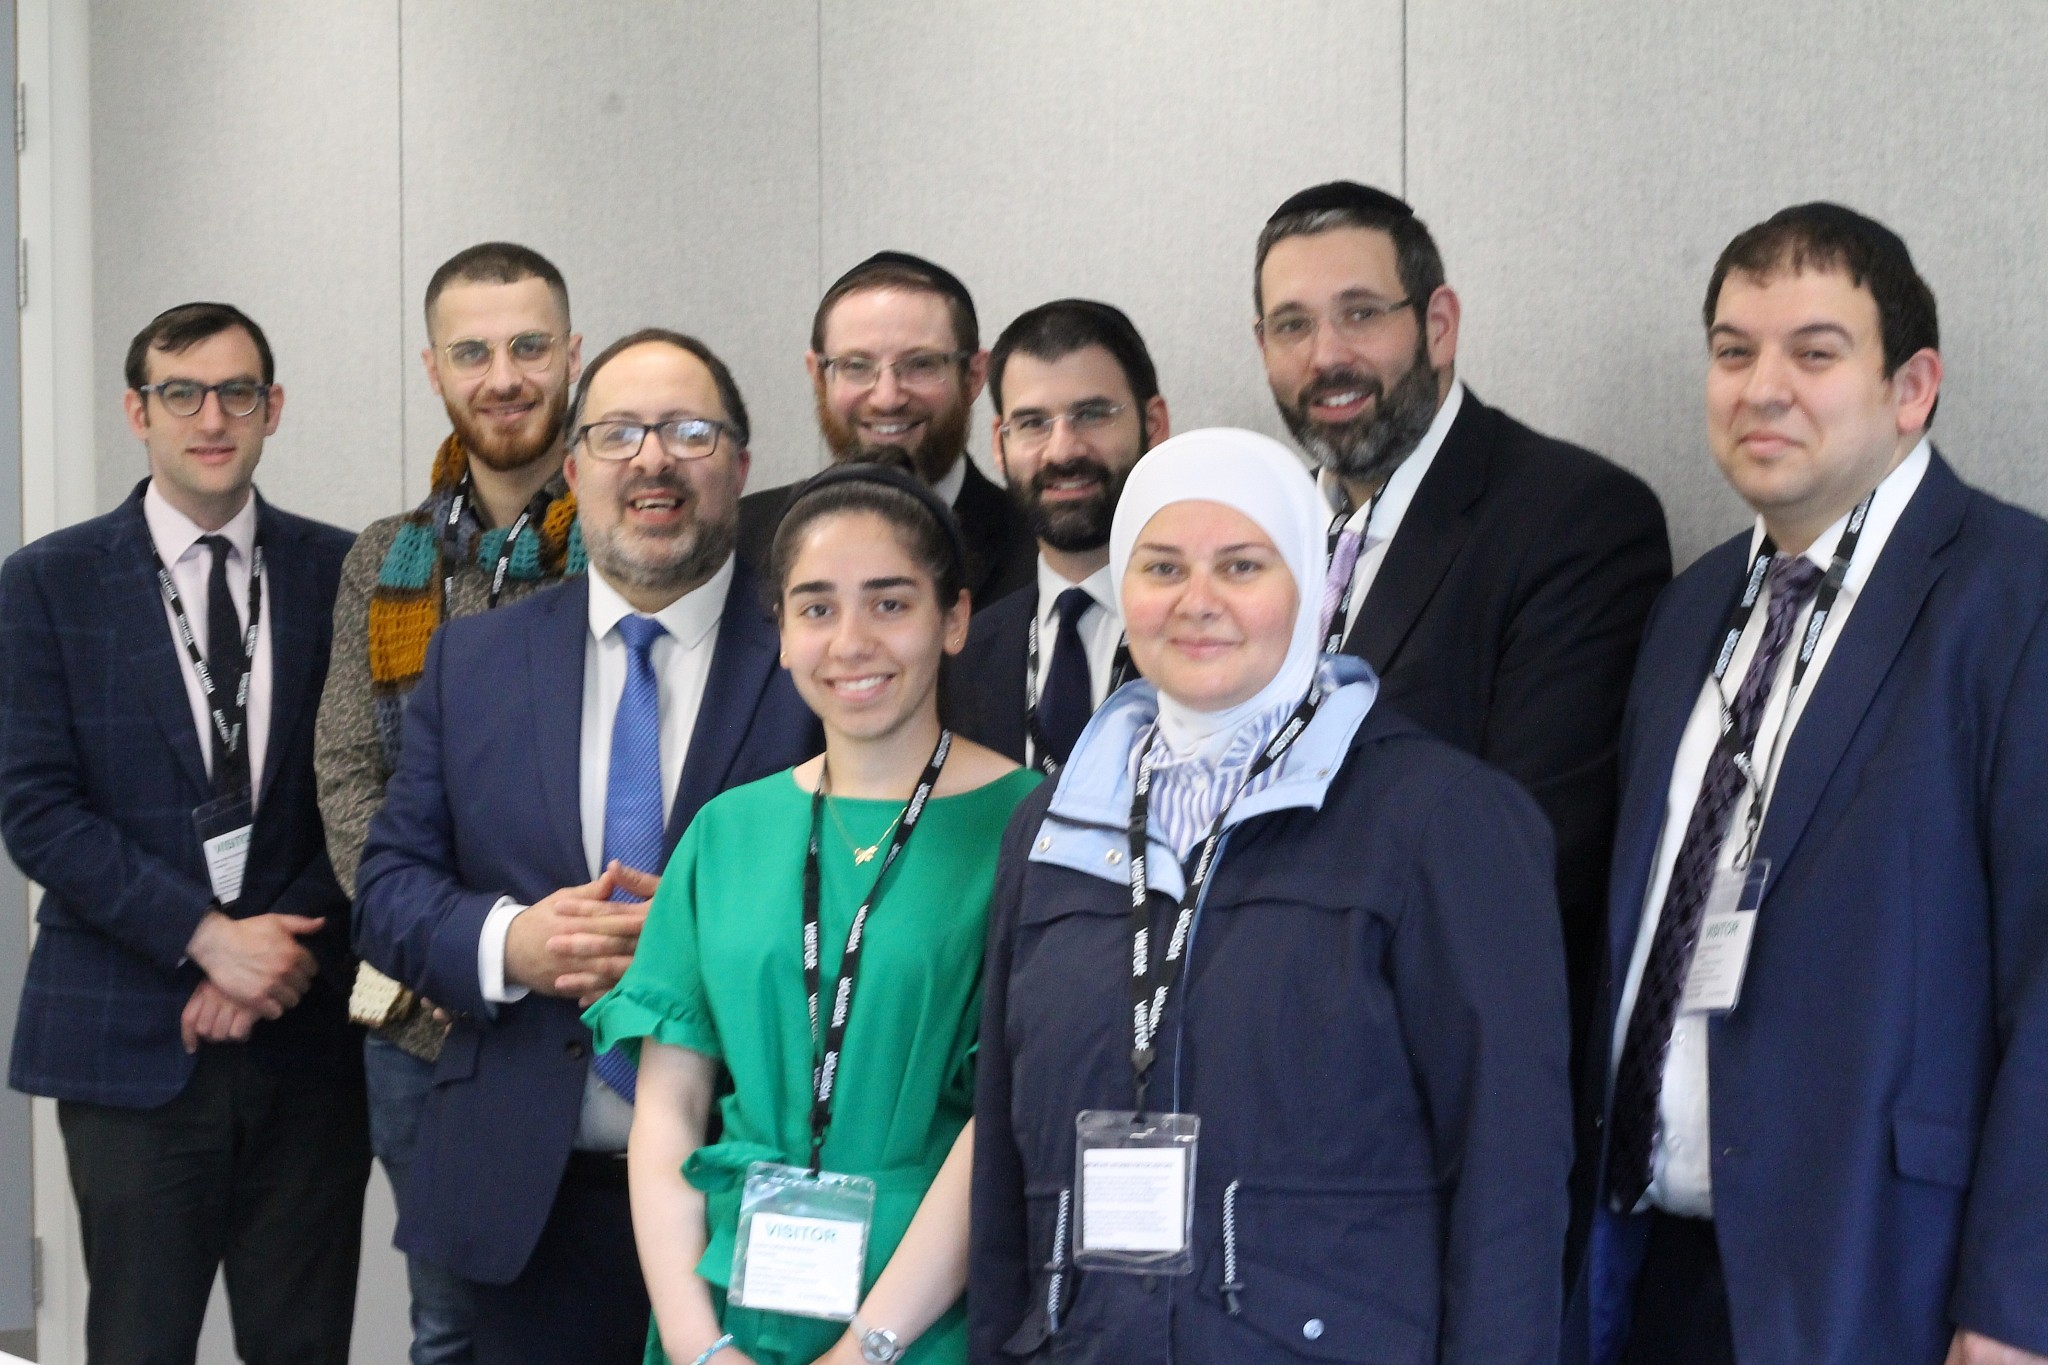 From Baghdad to Coventry – a rabbi reflects on refugees' journeys